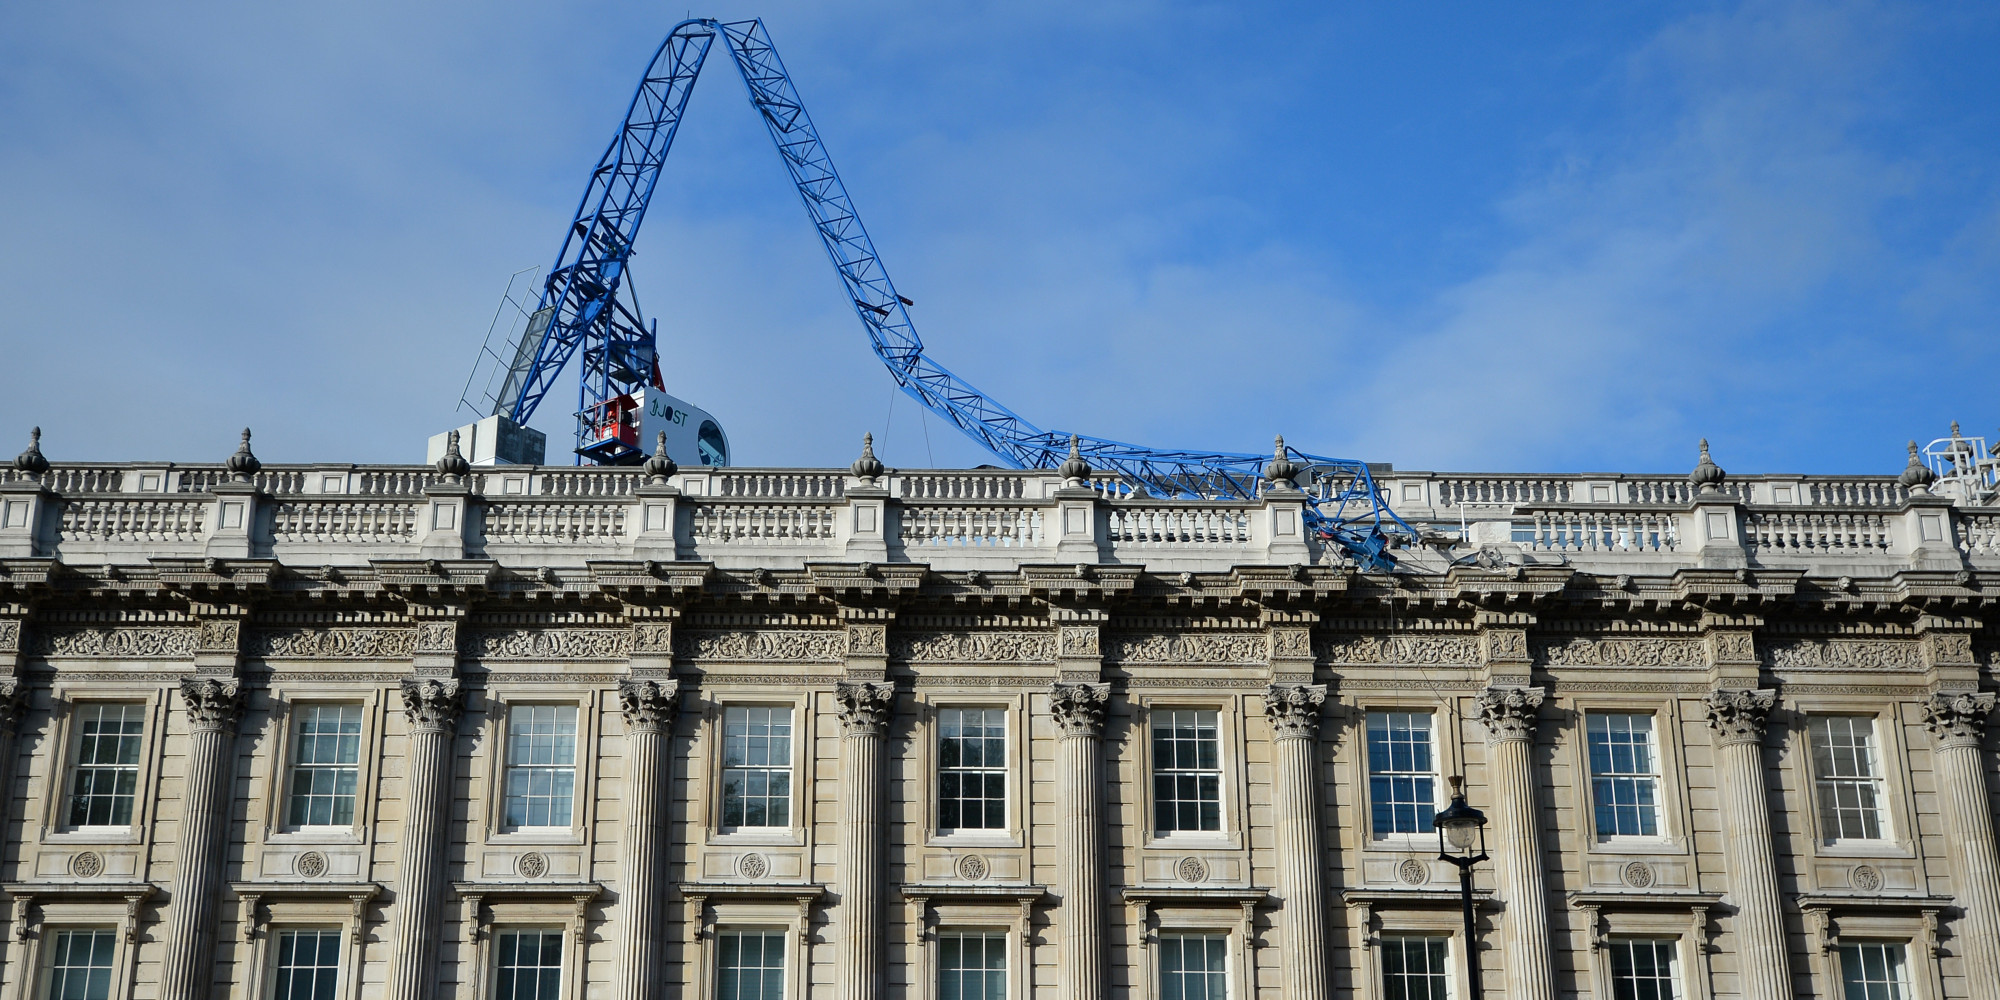 uk storm: crane collapses on cabinet office roof, nick clegg